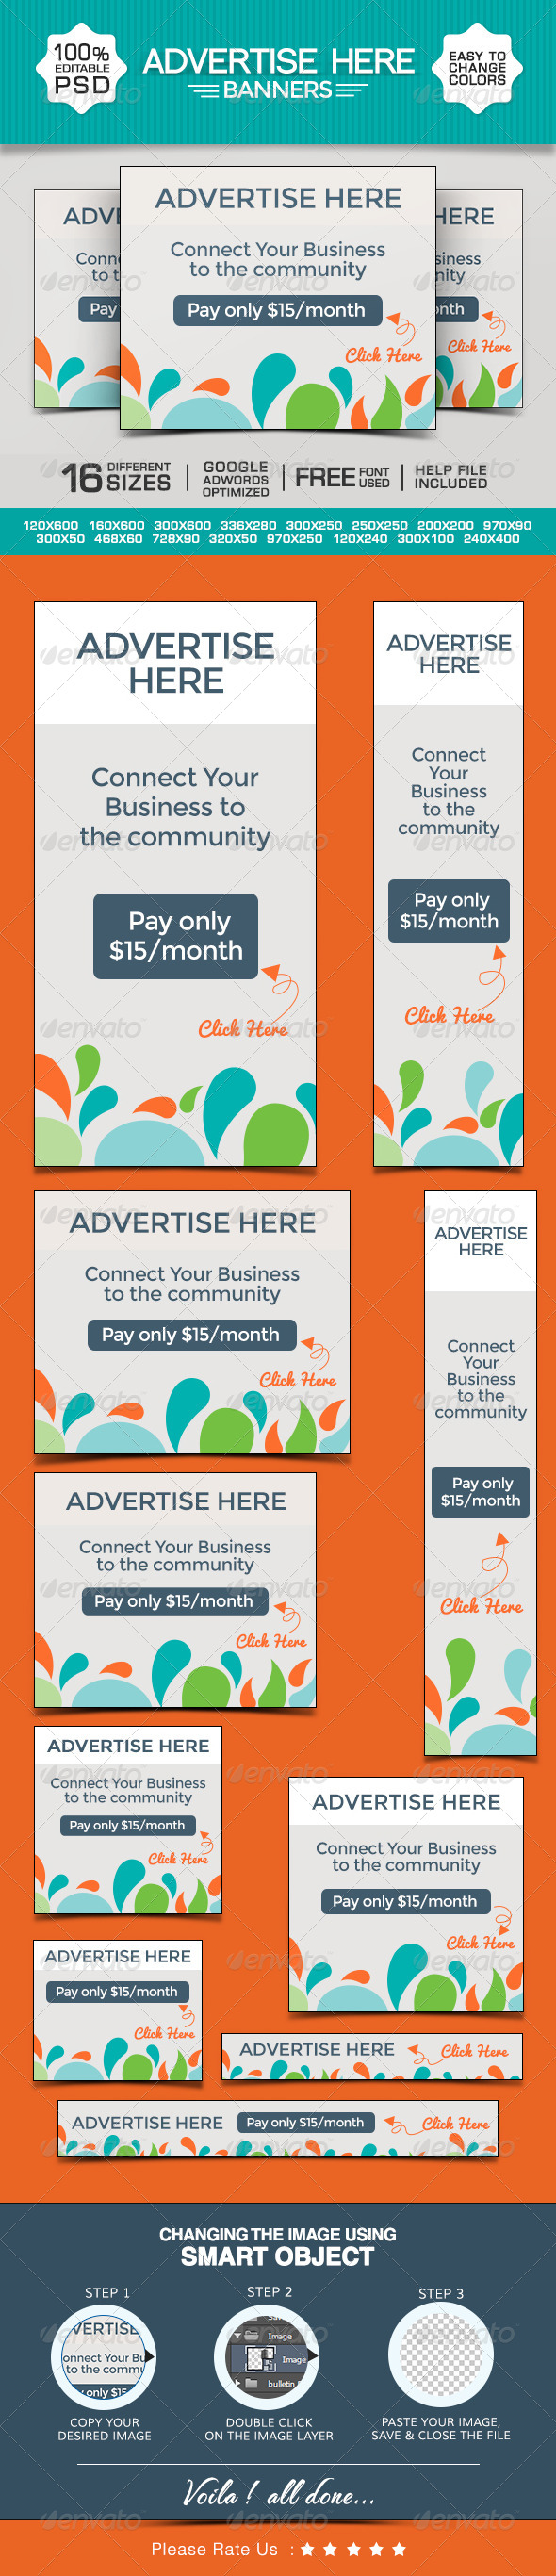 Advertise Here Banners Template PSD | Buy and Download: http://graphicriver.net/item/advertise-here-banners/8644833?WT.ac=category_thumb&WT.z_author=doto&ref=ksioks